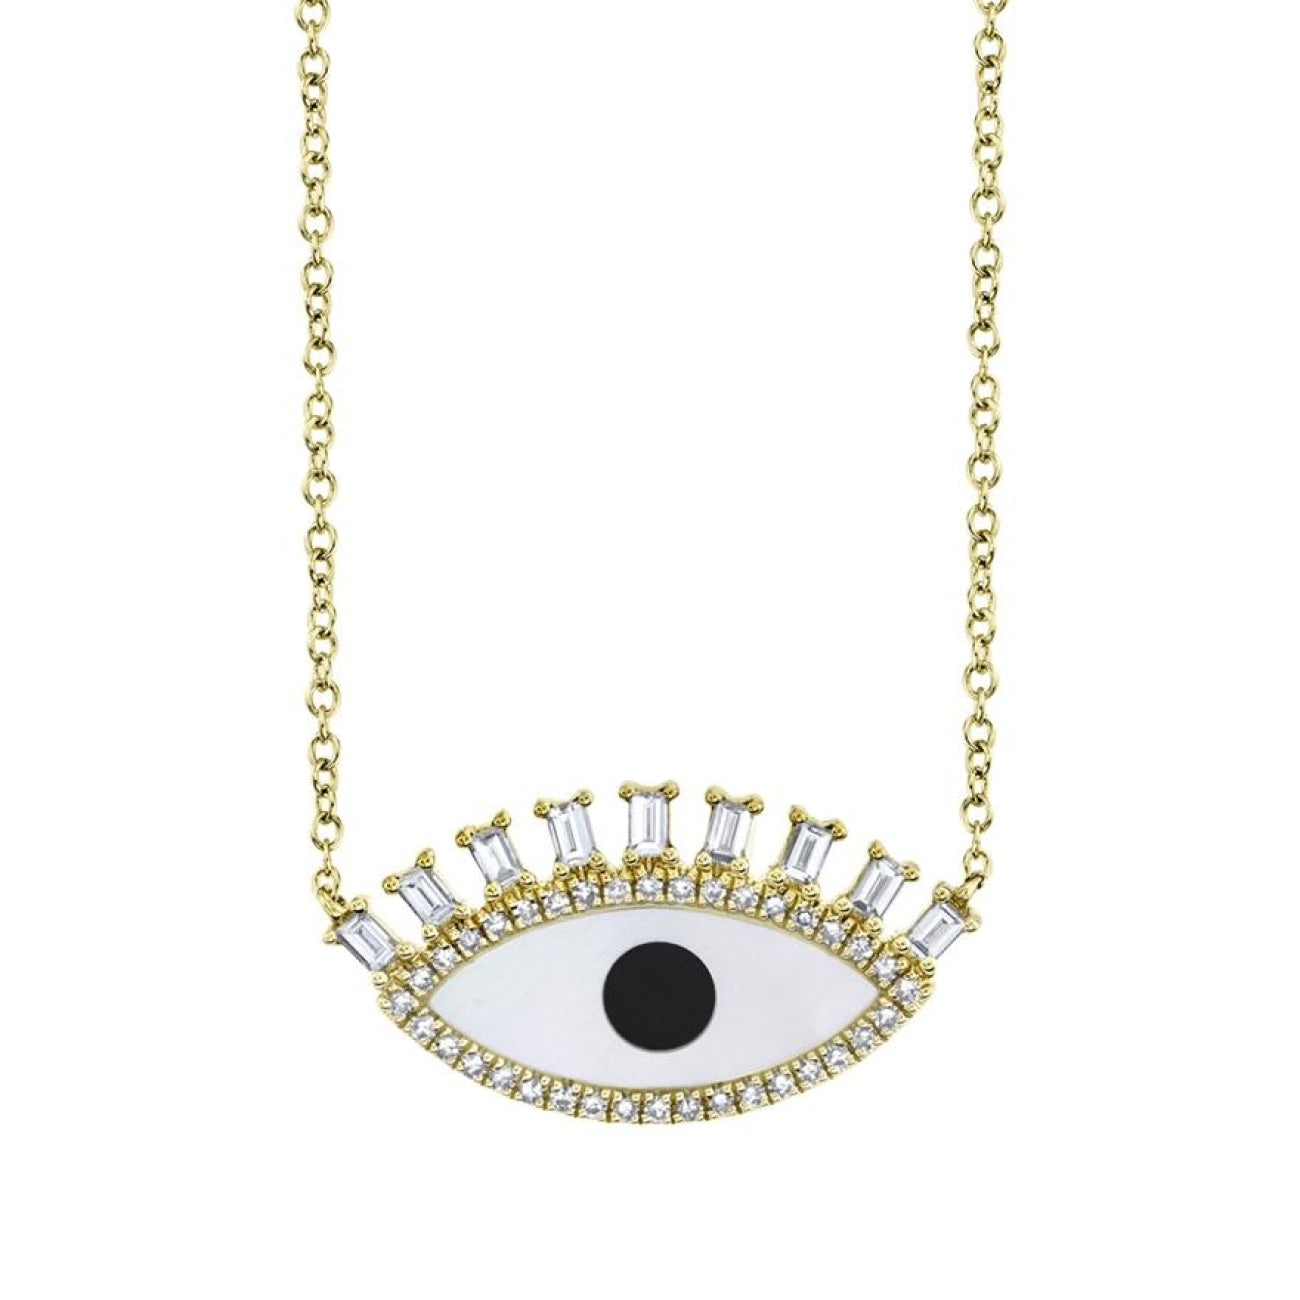 Shy Creation Jewelry - 0.29CT DIAMOND & 0.94CT ONYX & MOTHER OF PEARL 14K YELLOW GOLD EYE NECKLACE | Manfredi Jewels